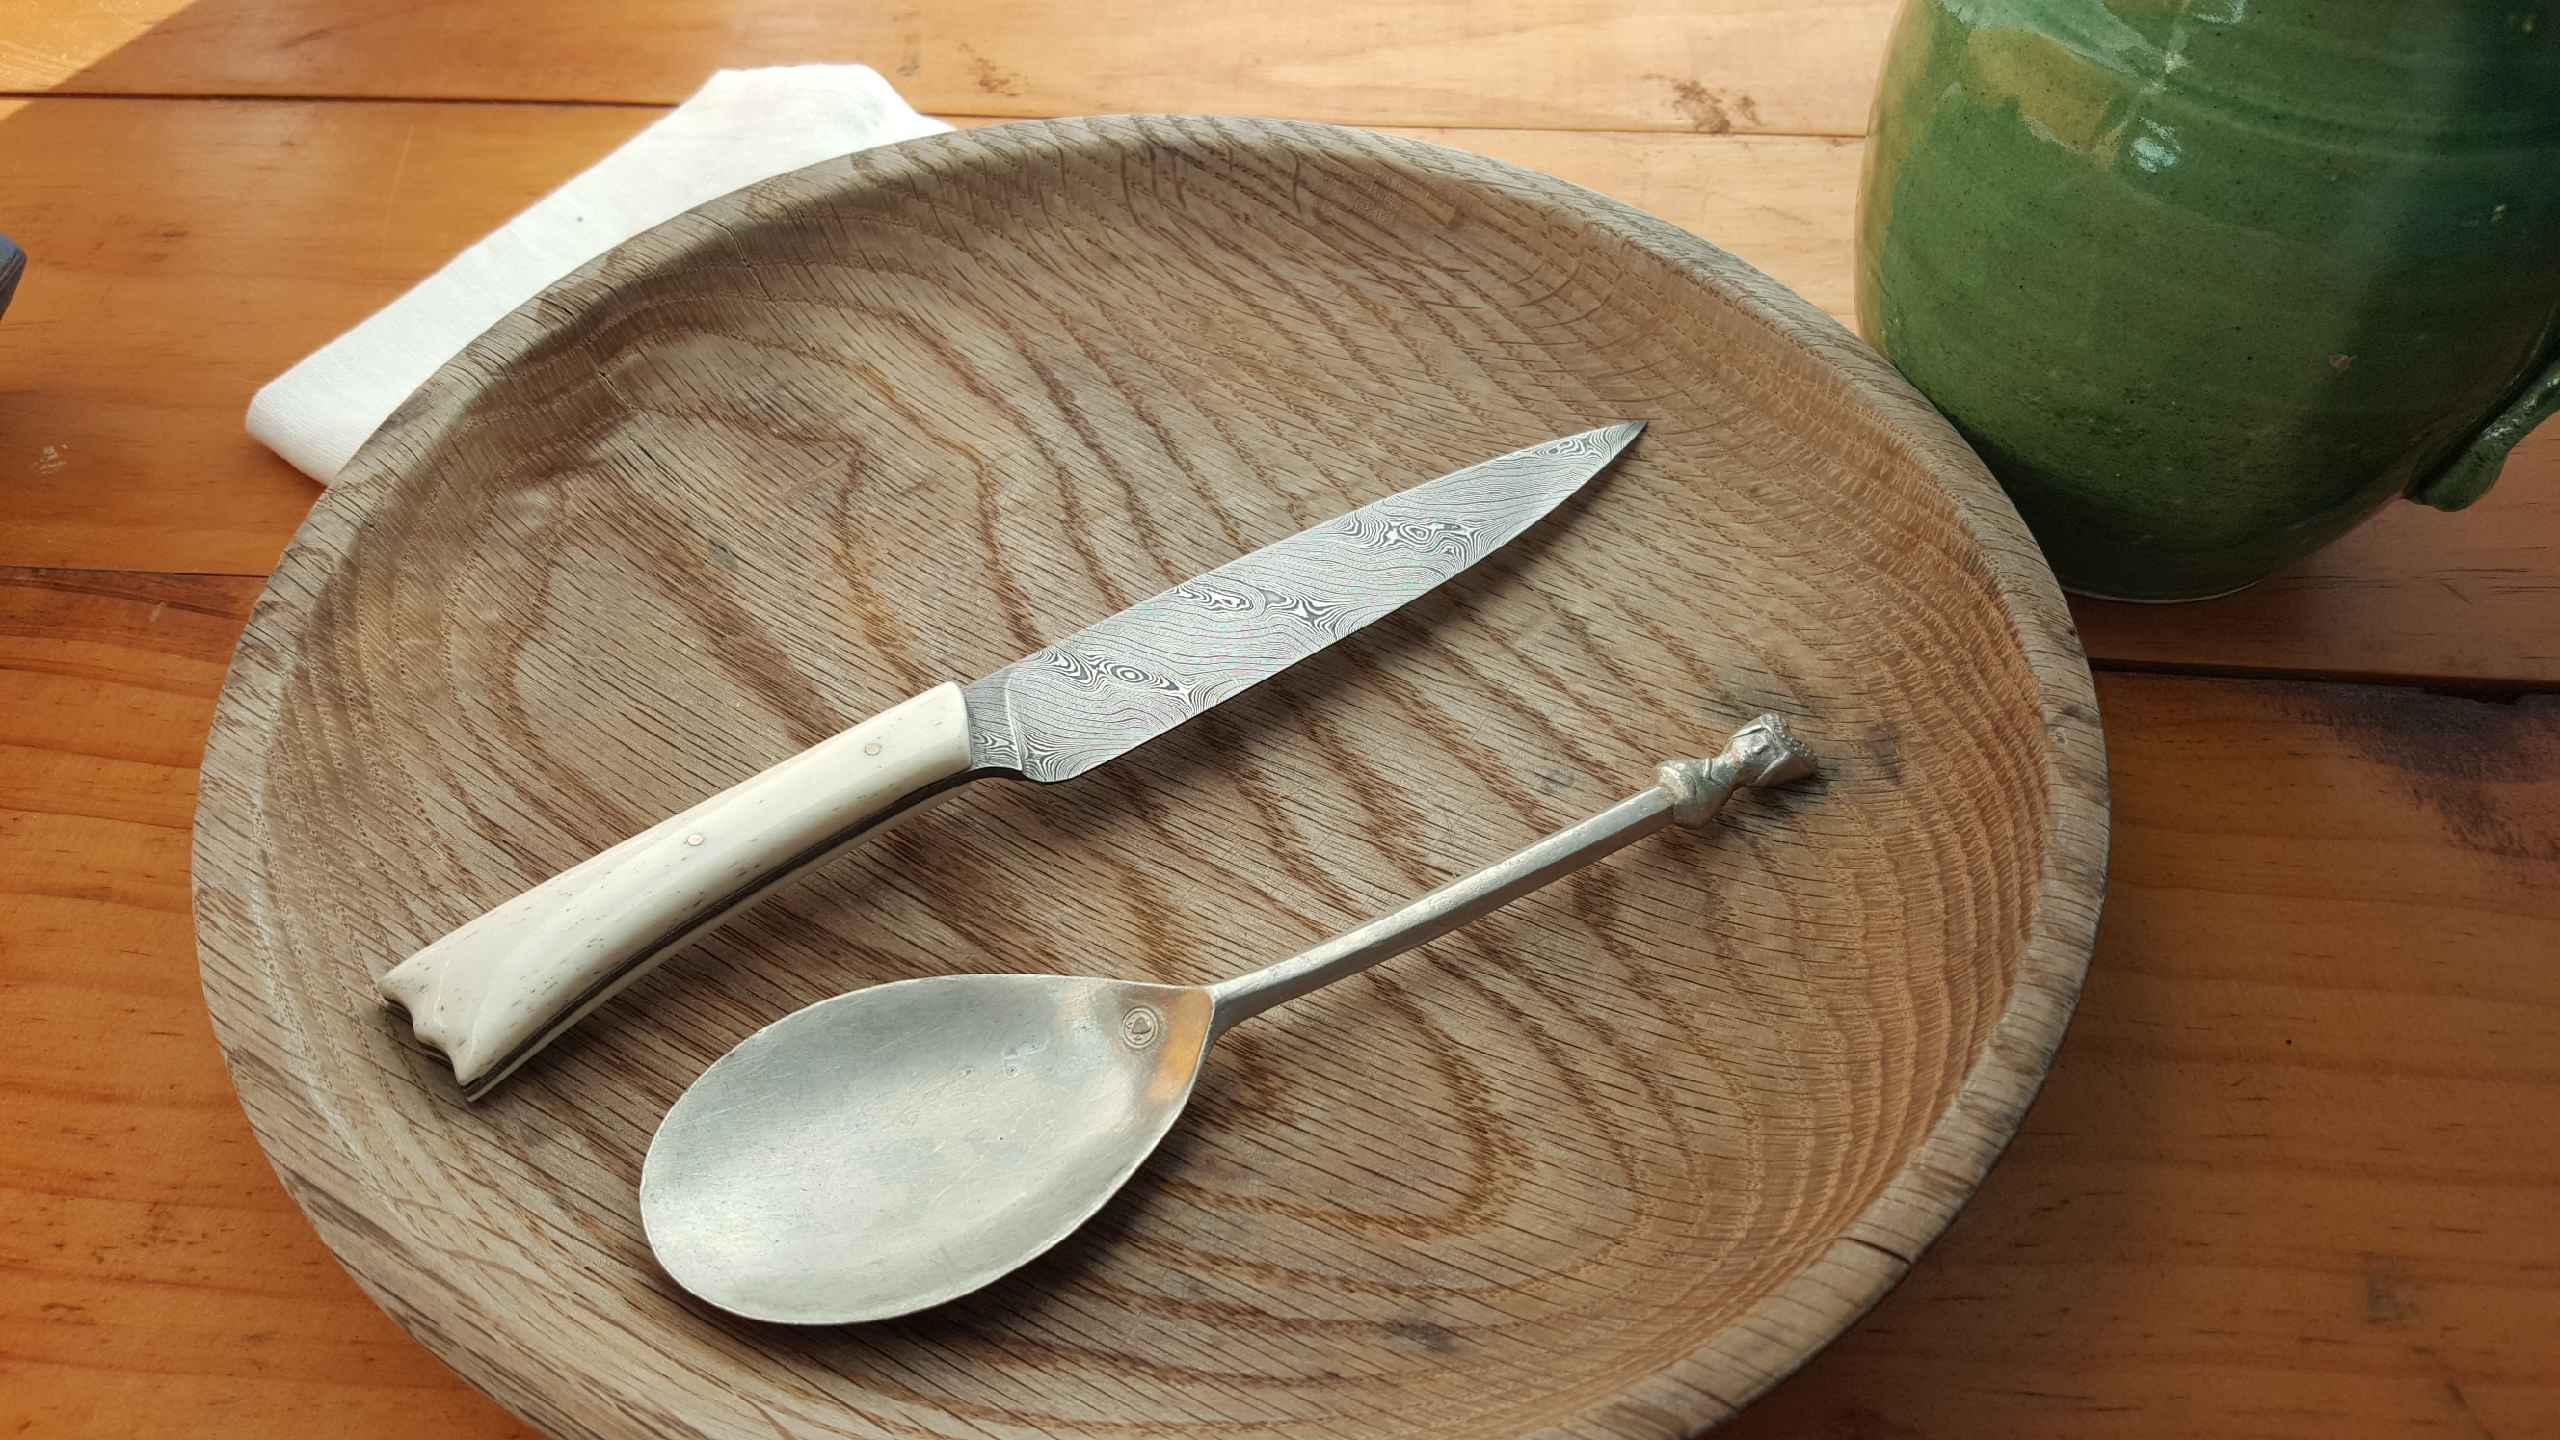 Bone handled eating knife on plate with spoon